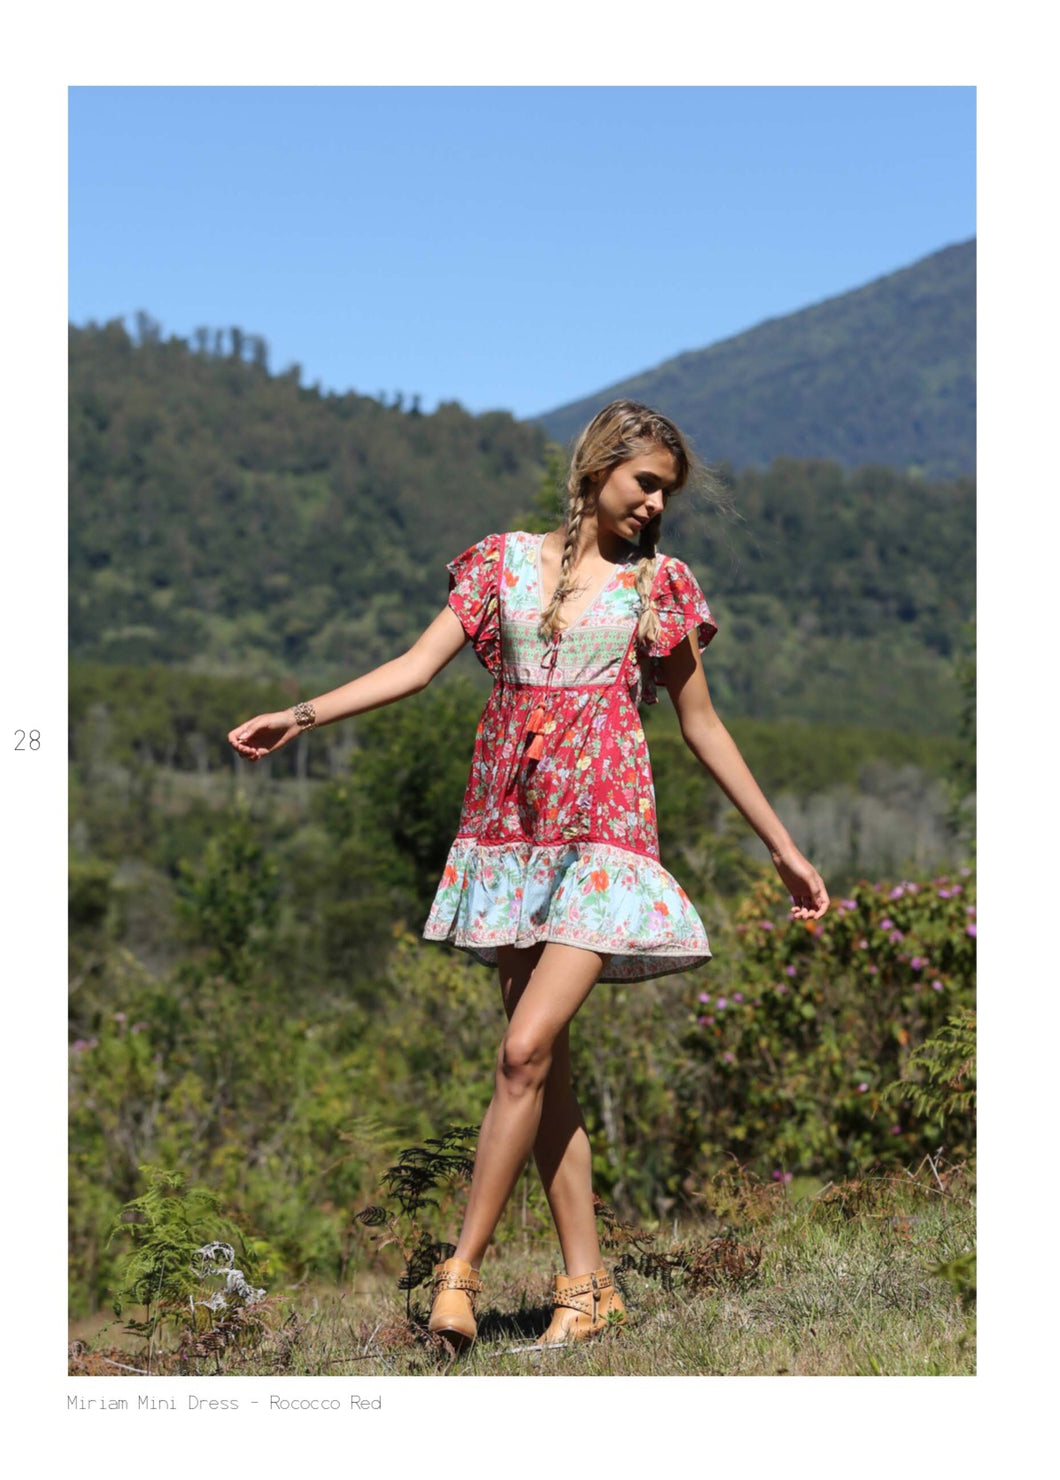 Lost in Paradise - Miriam Minidress - Last one Red Medium